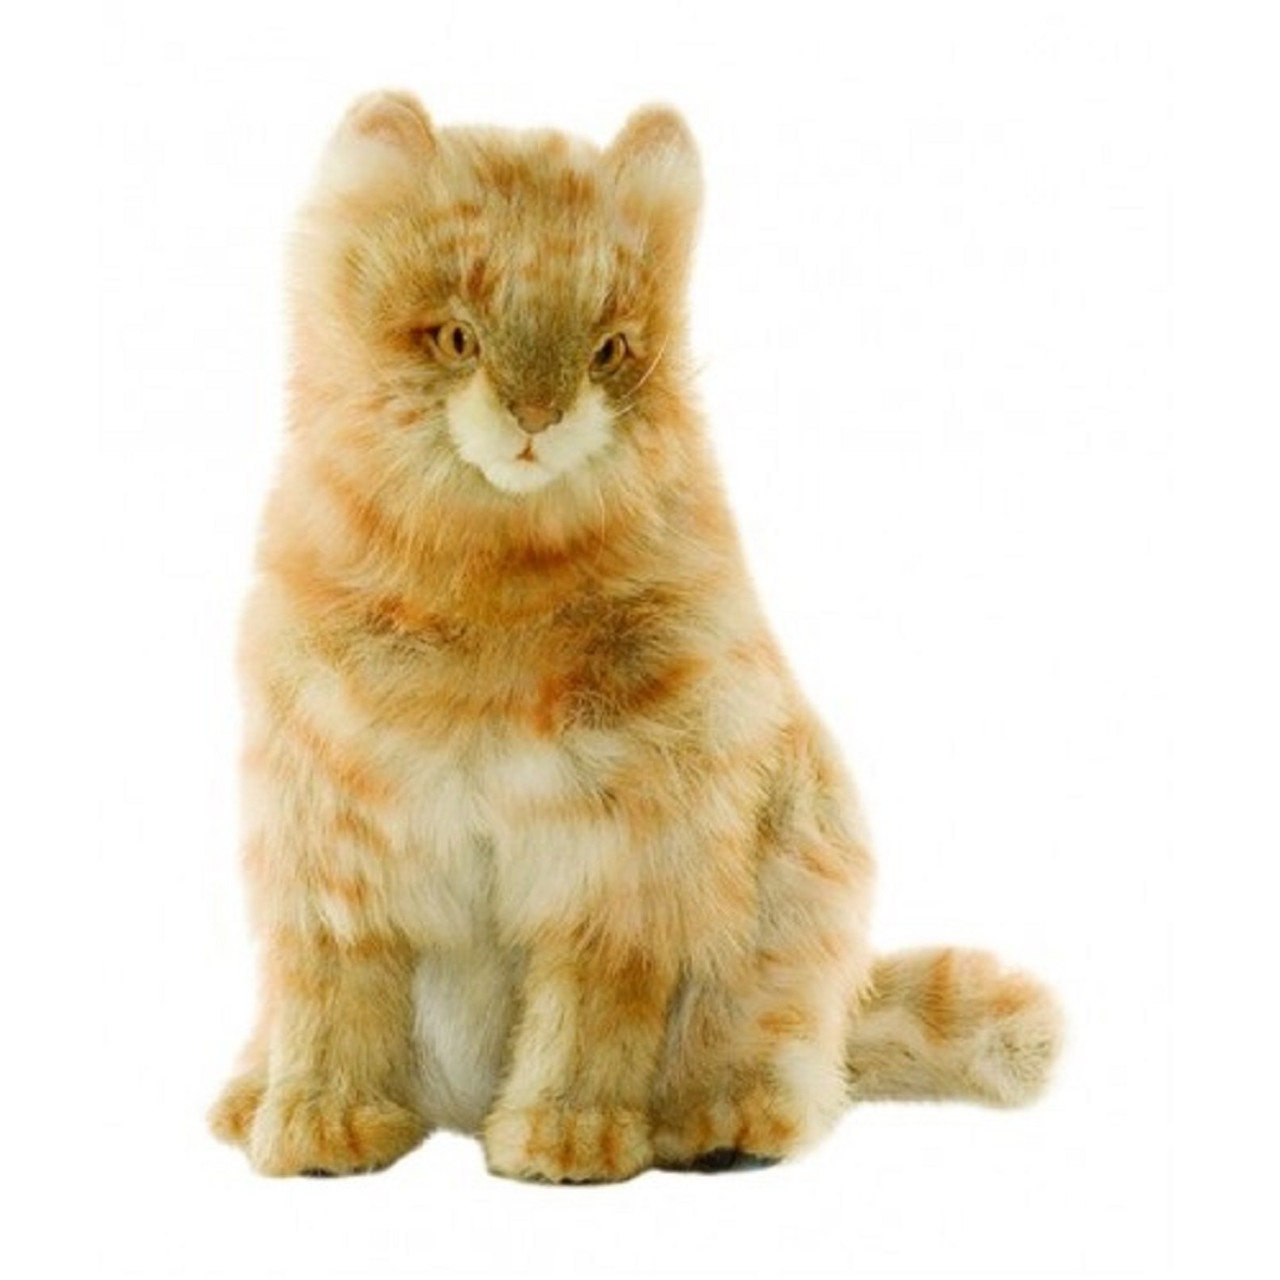 Pack Of 2 Life Like Handcrafted Extra Soft Plush Tan Calico Cat